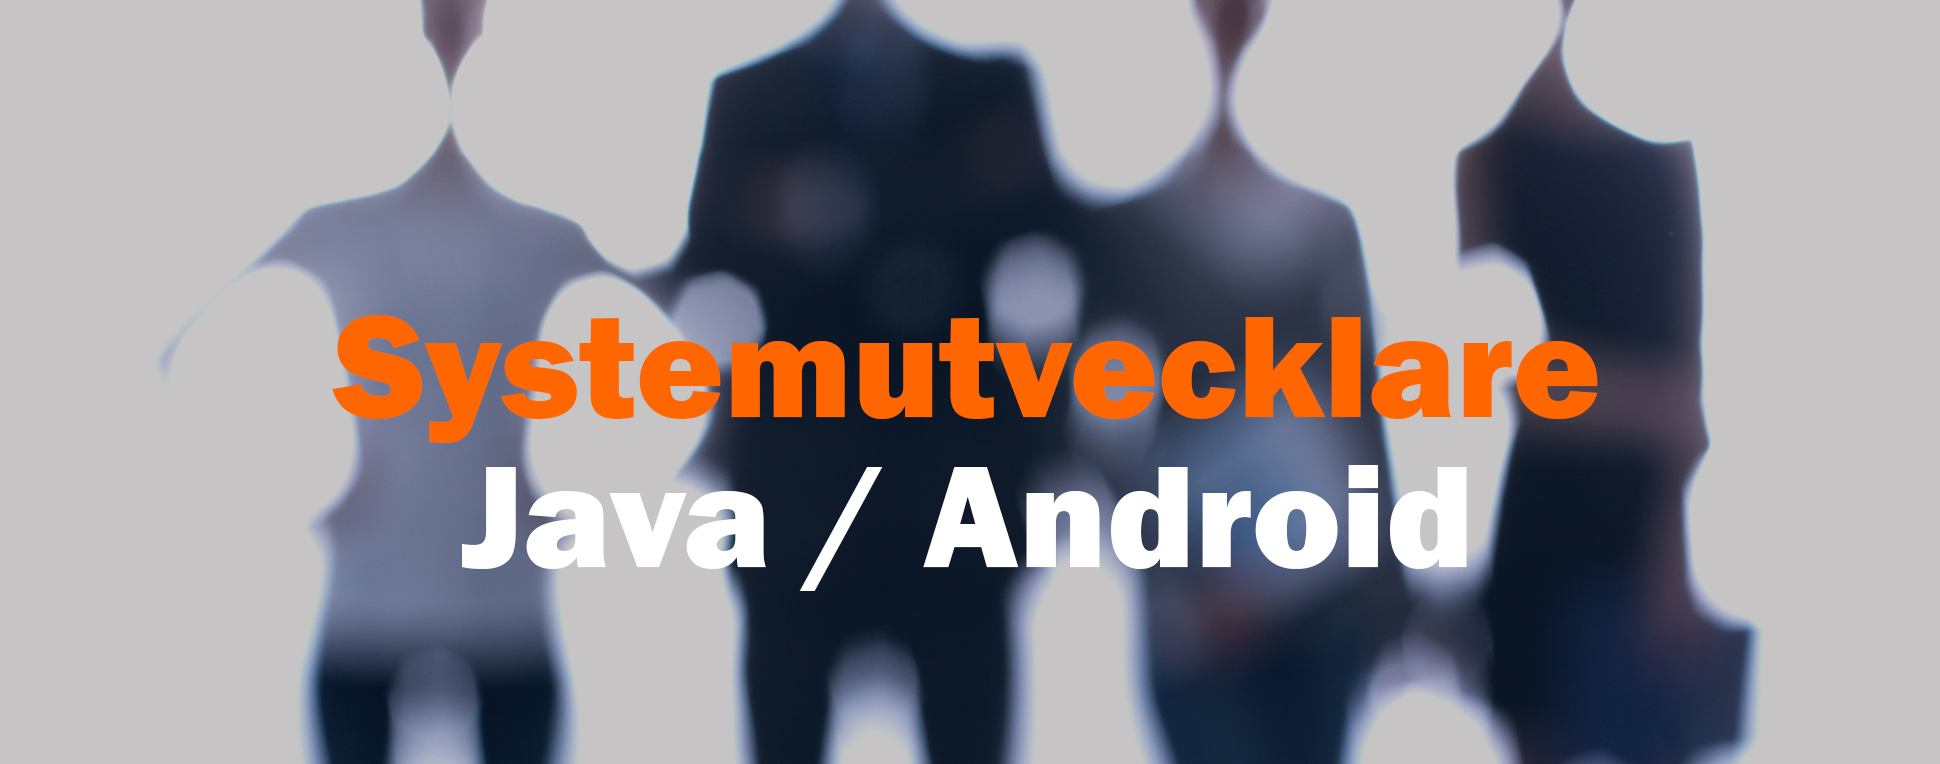 systemutvecklare java android 02